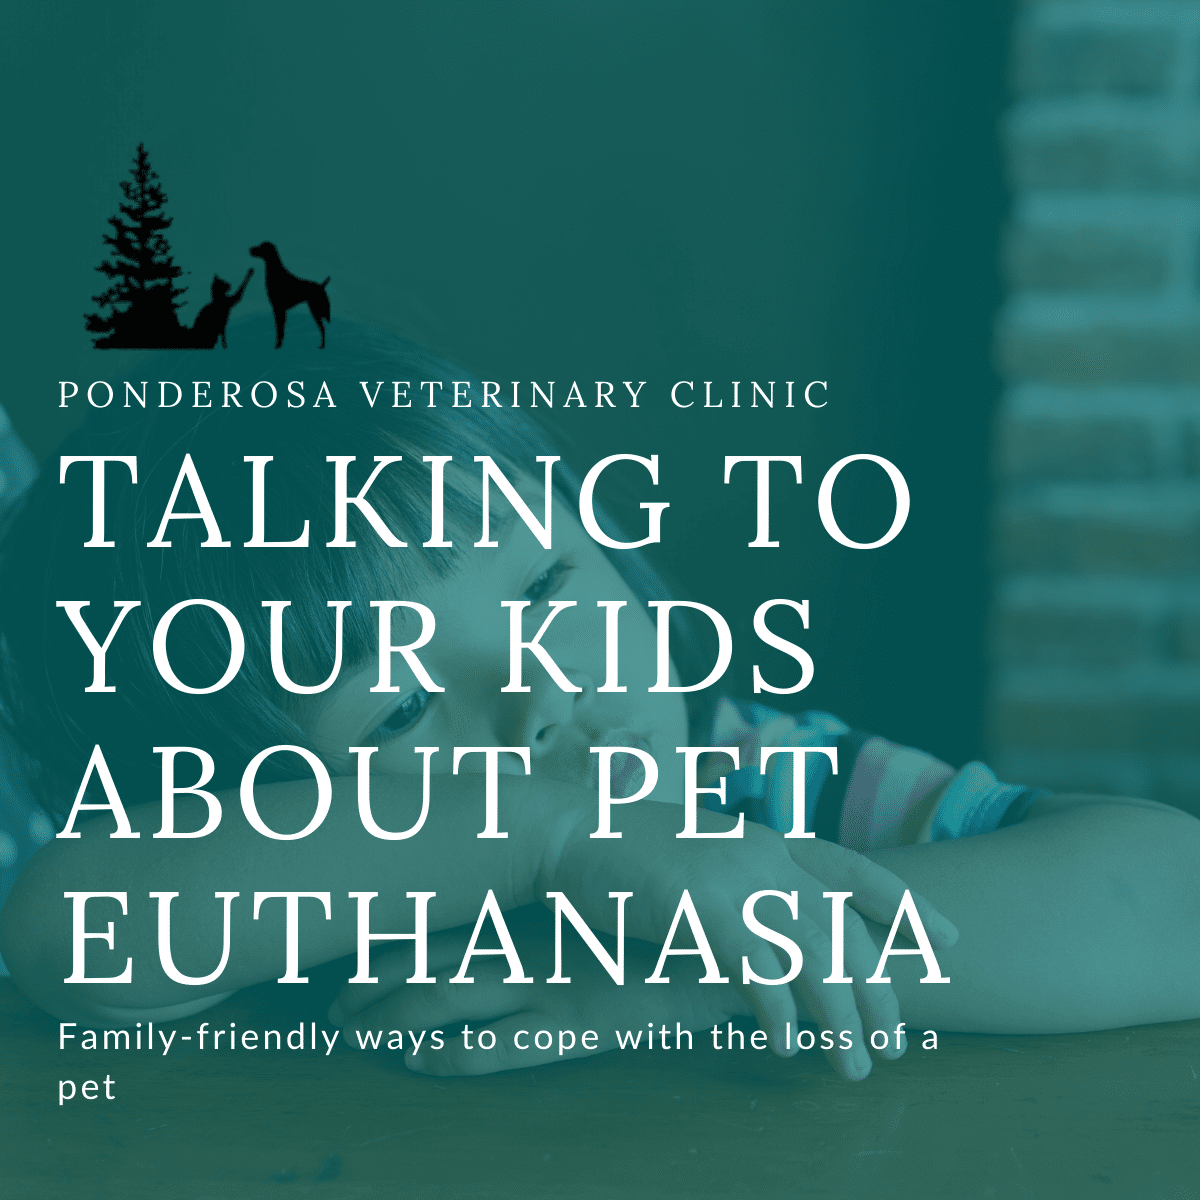 Child resting head on hands and looking sad in order to depict how to talk to your kids about pet euthanasia